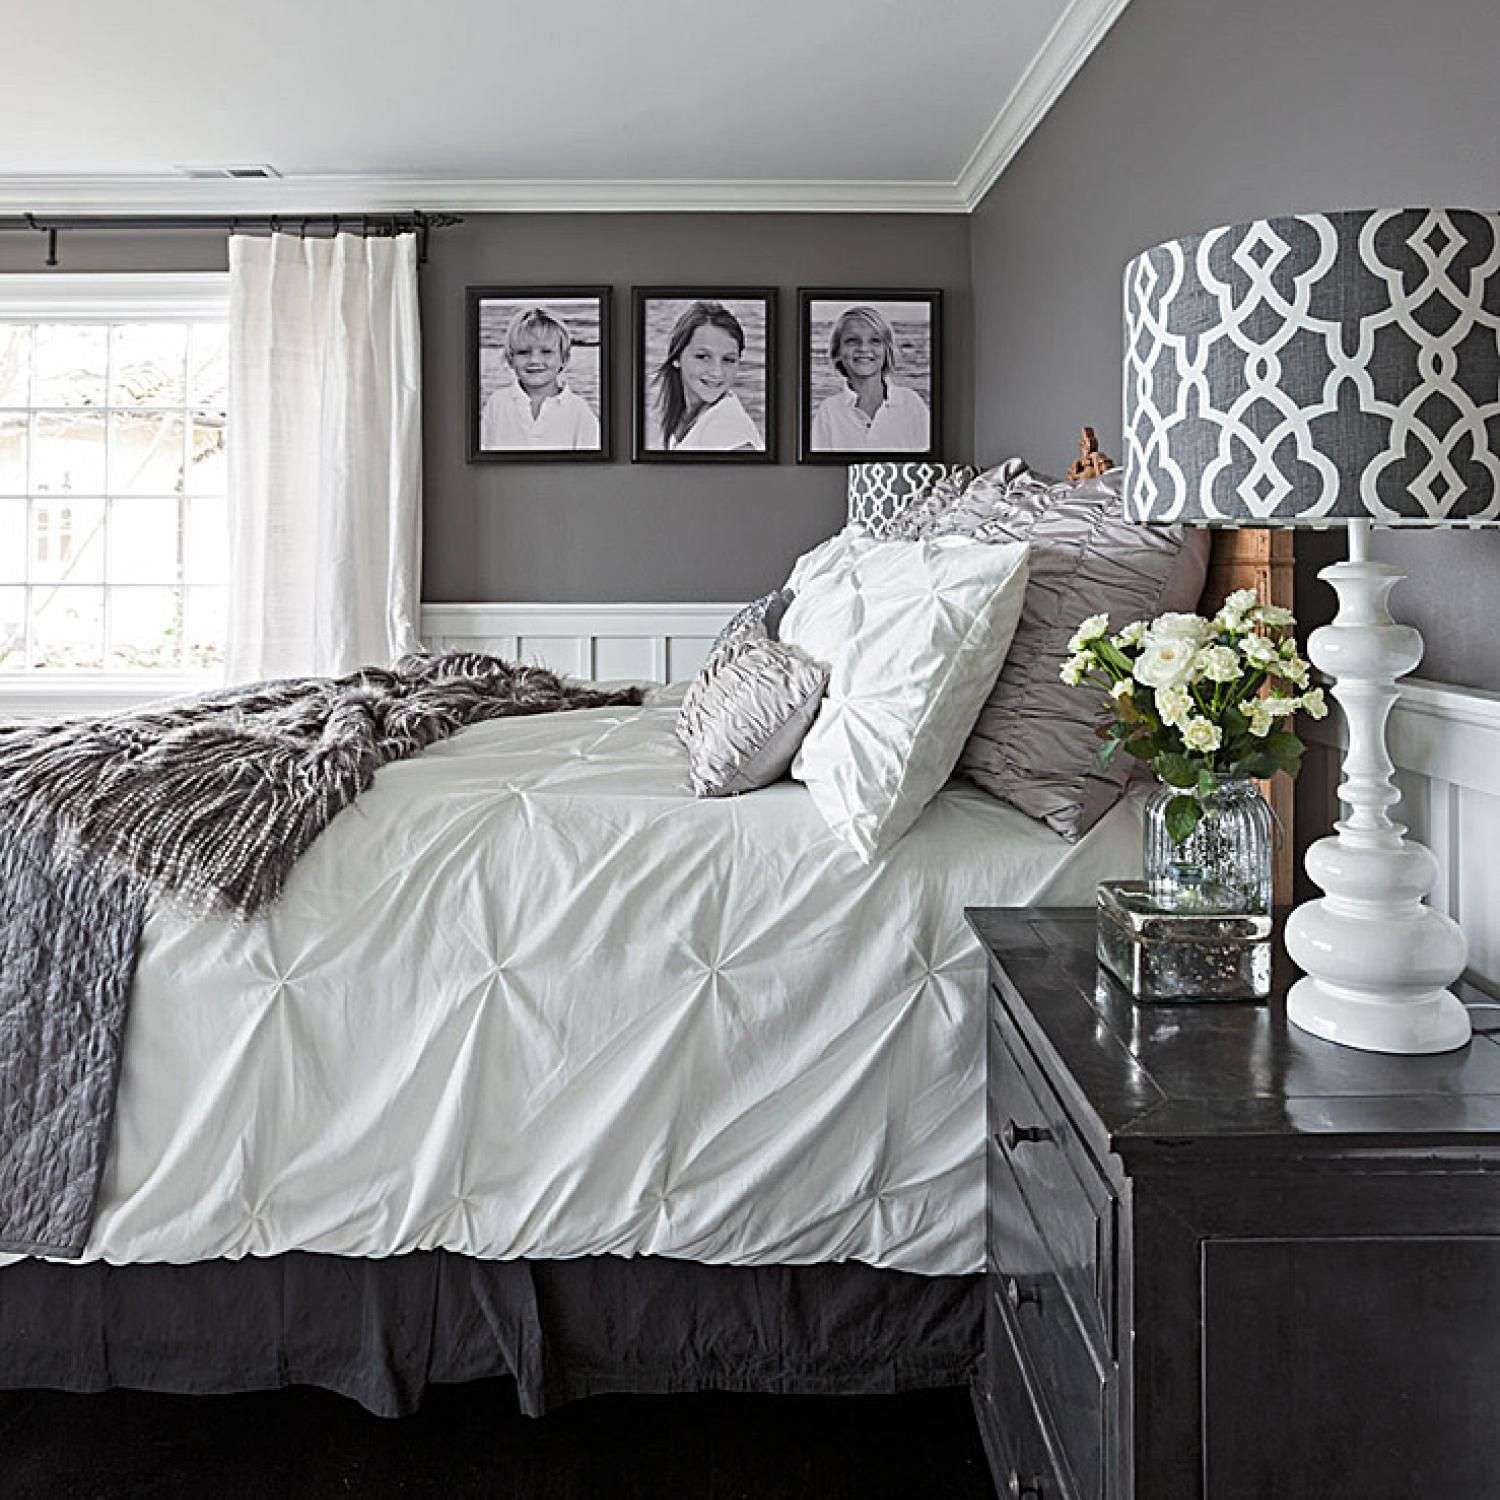 Bedroom colors grey and white - Gorgeous Gray And White Bedrooms Decor